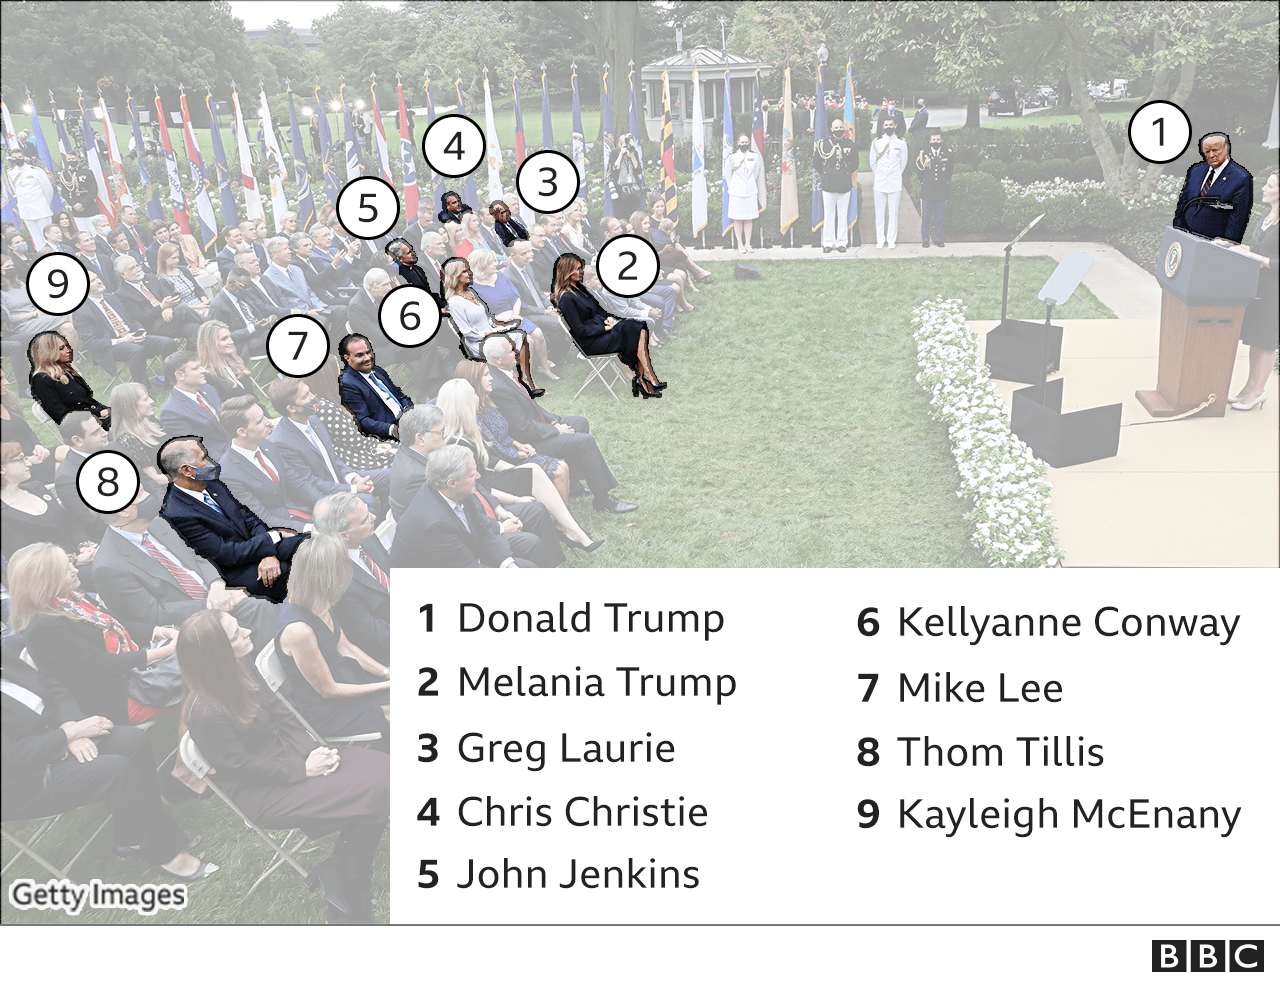 An annotated image of the Rose Garden event for Judge Coney Barrett, showing a number of people in attendance who have now tested positive for coronavirus